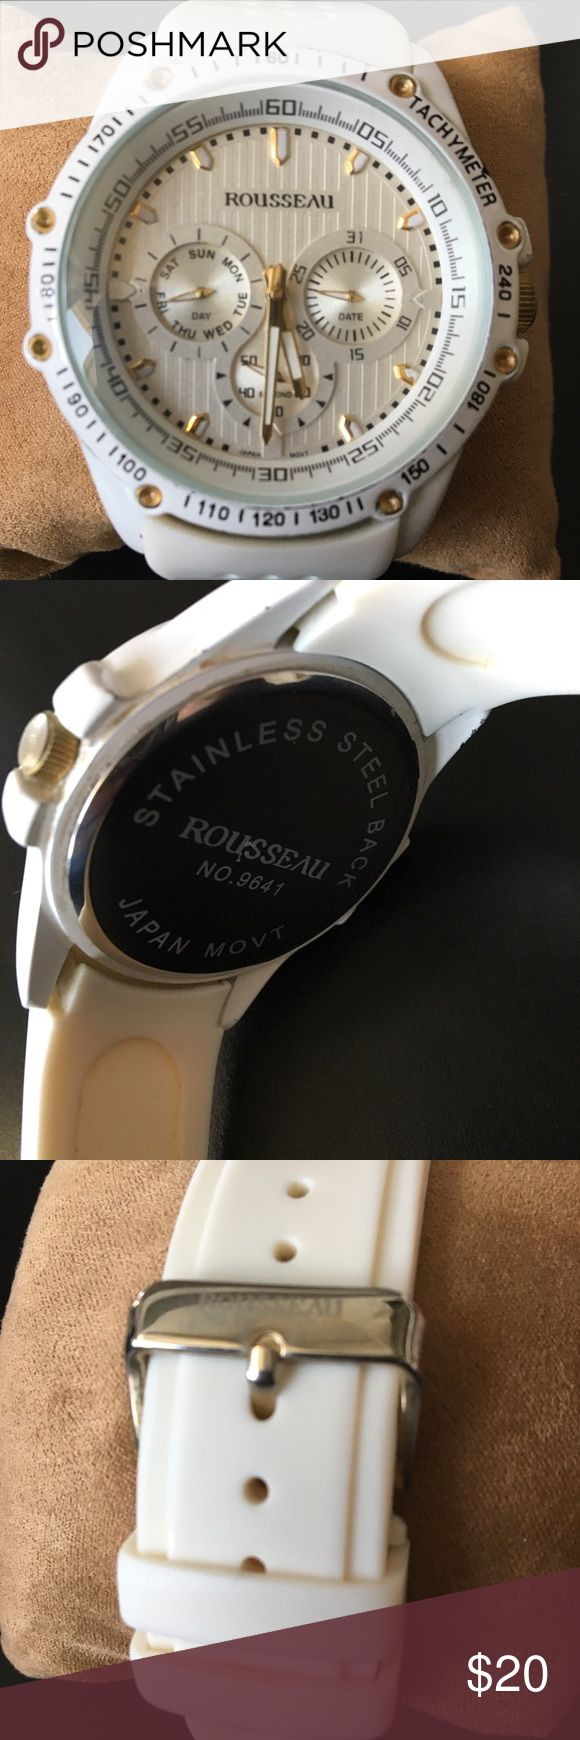 Gel Watch White gel Watch by the brand name Rousseau. Has been worn a lot, hence has some slight dings on the side. The glass itself has zero scratches. Watch is still in good condition. A new battery has been just put in as well. Rousseau Accessories Watches